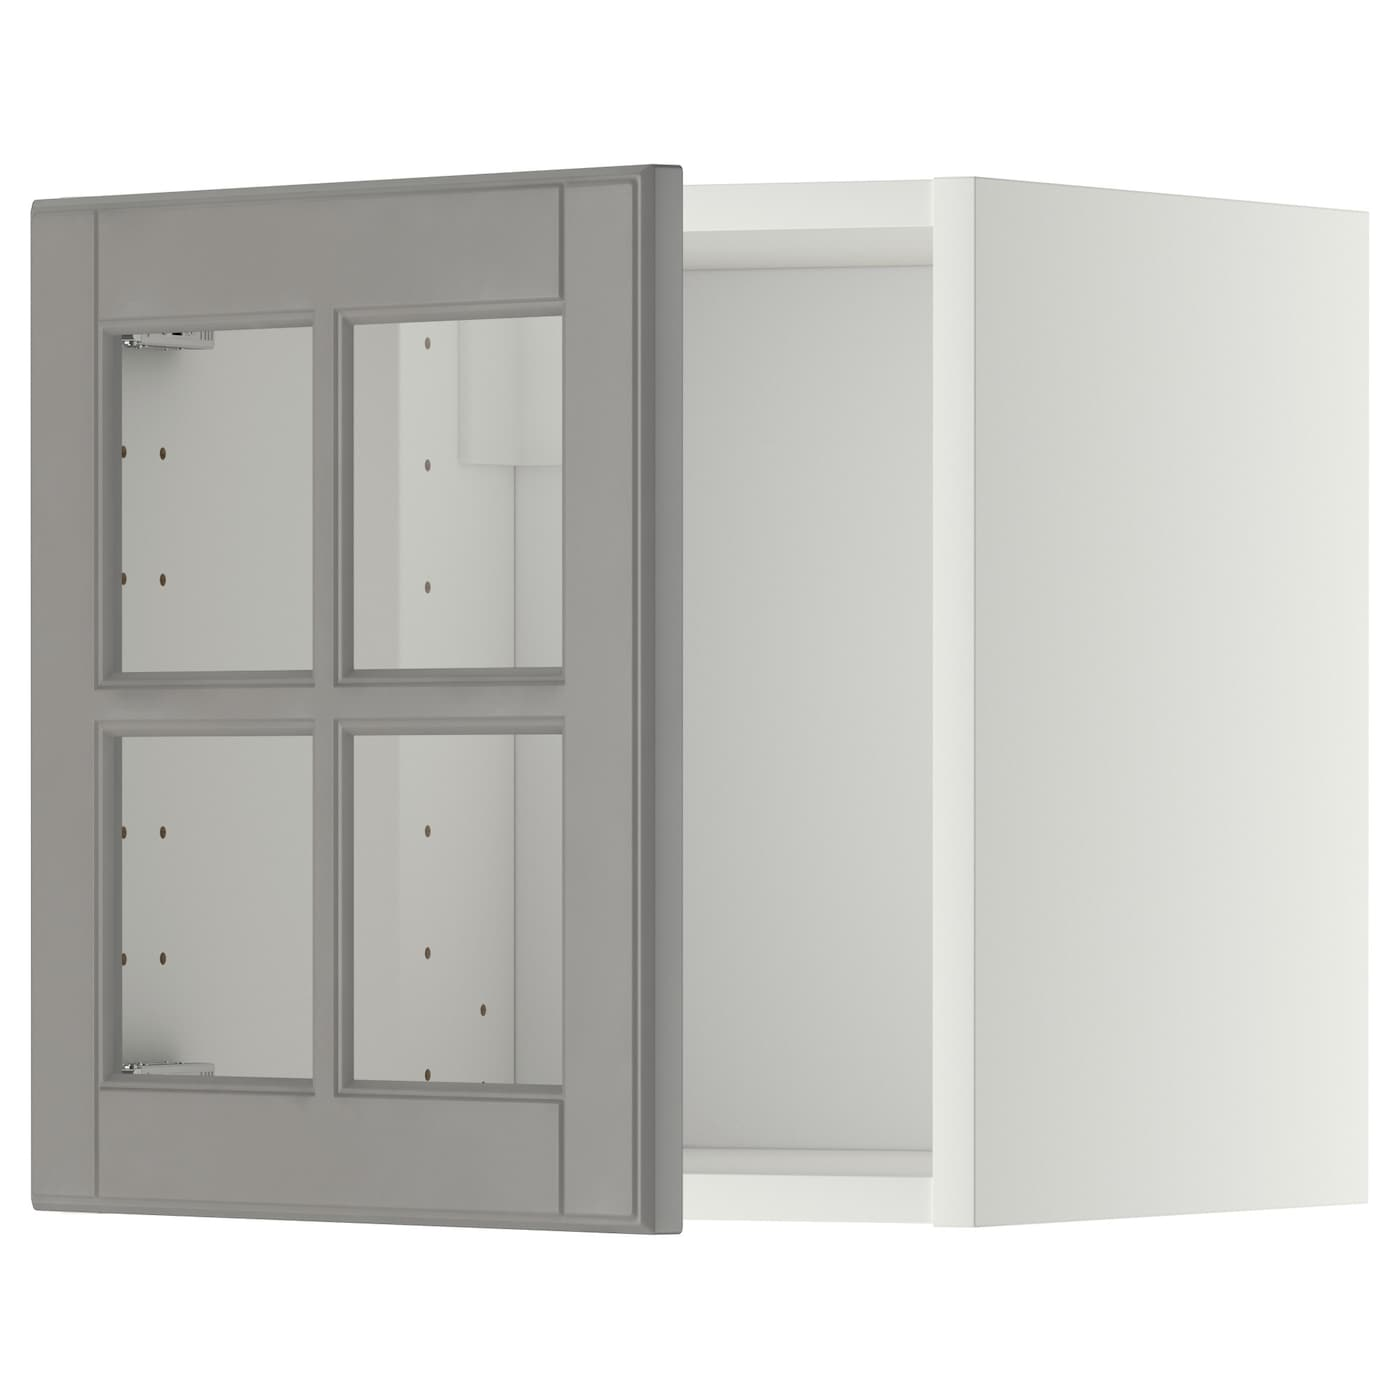 Metod wall cabinet with glass door white bodbyn grey 40x40 cm ikea - Vitrine cuisine ikea ...